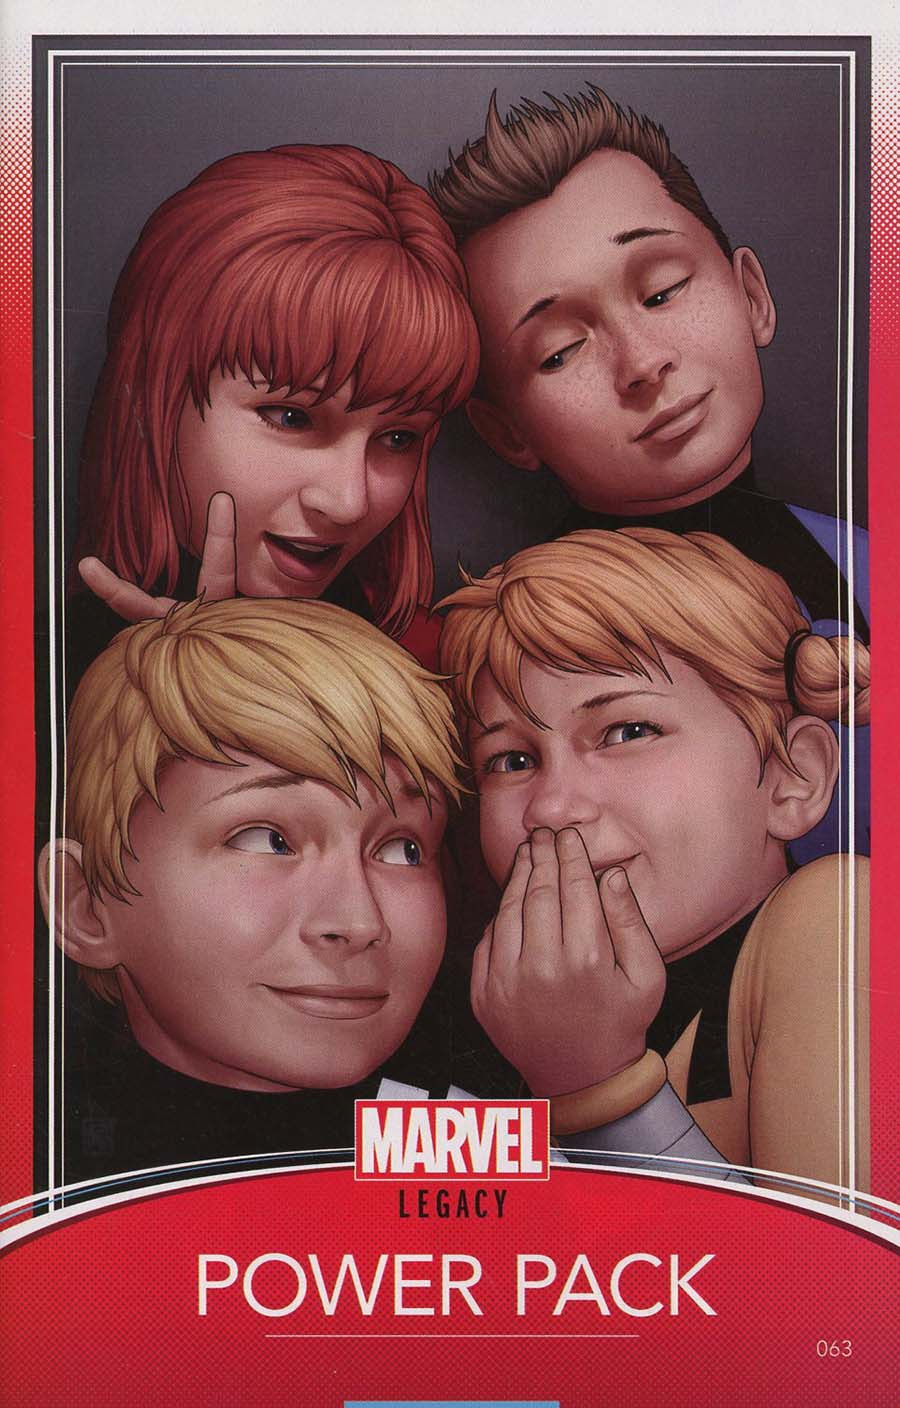 Power Pack Vol 3 #63 Cover B Variant John Tyler Christopher Trading Card Cover (Marvel Legacy Tie-In)